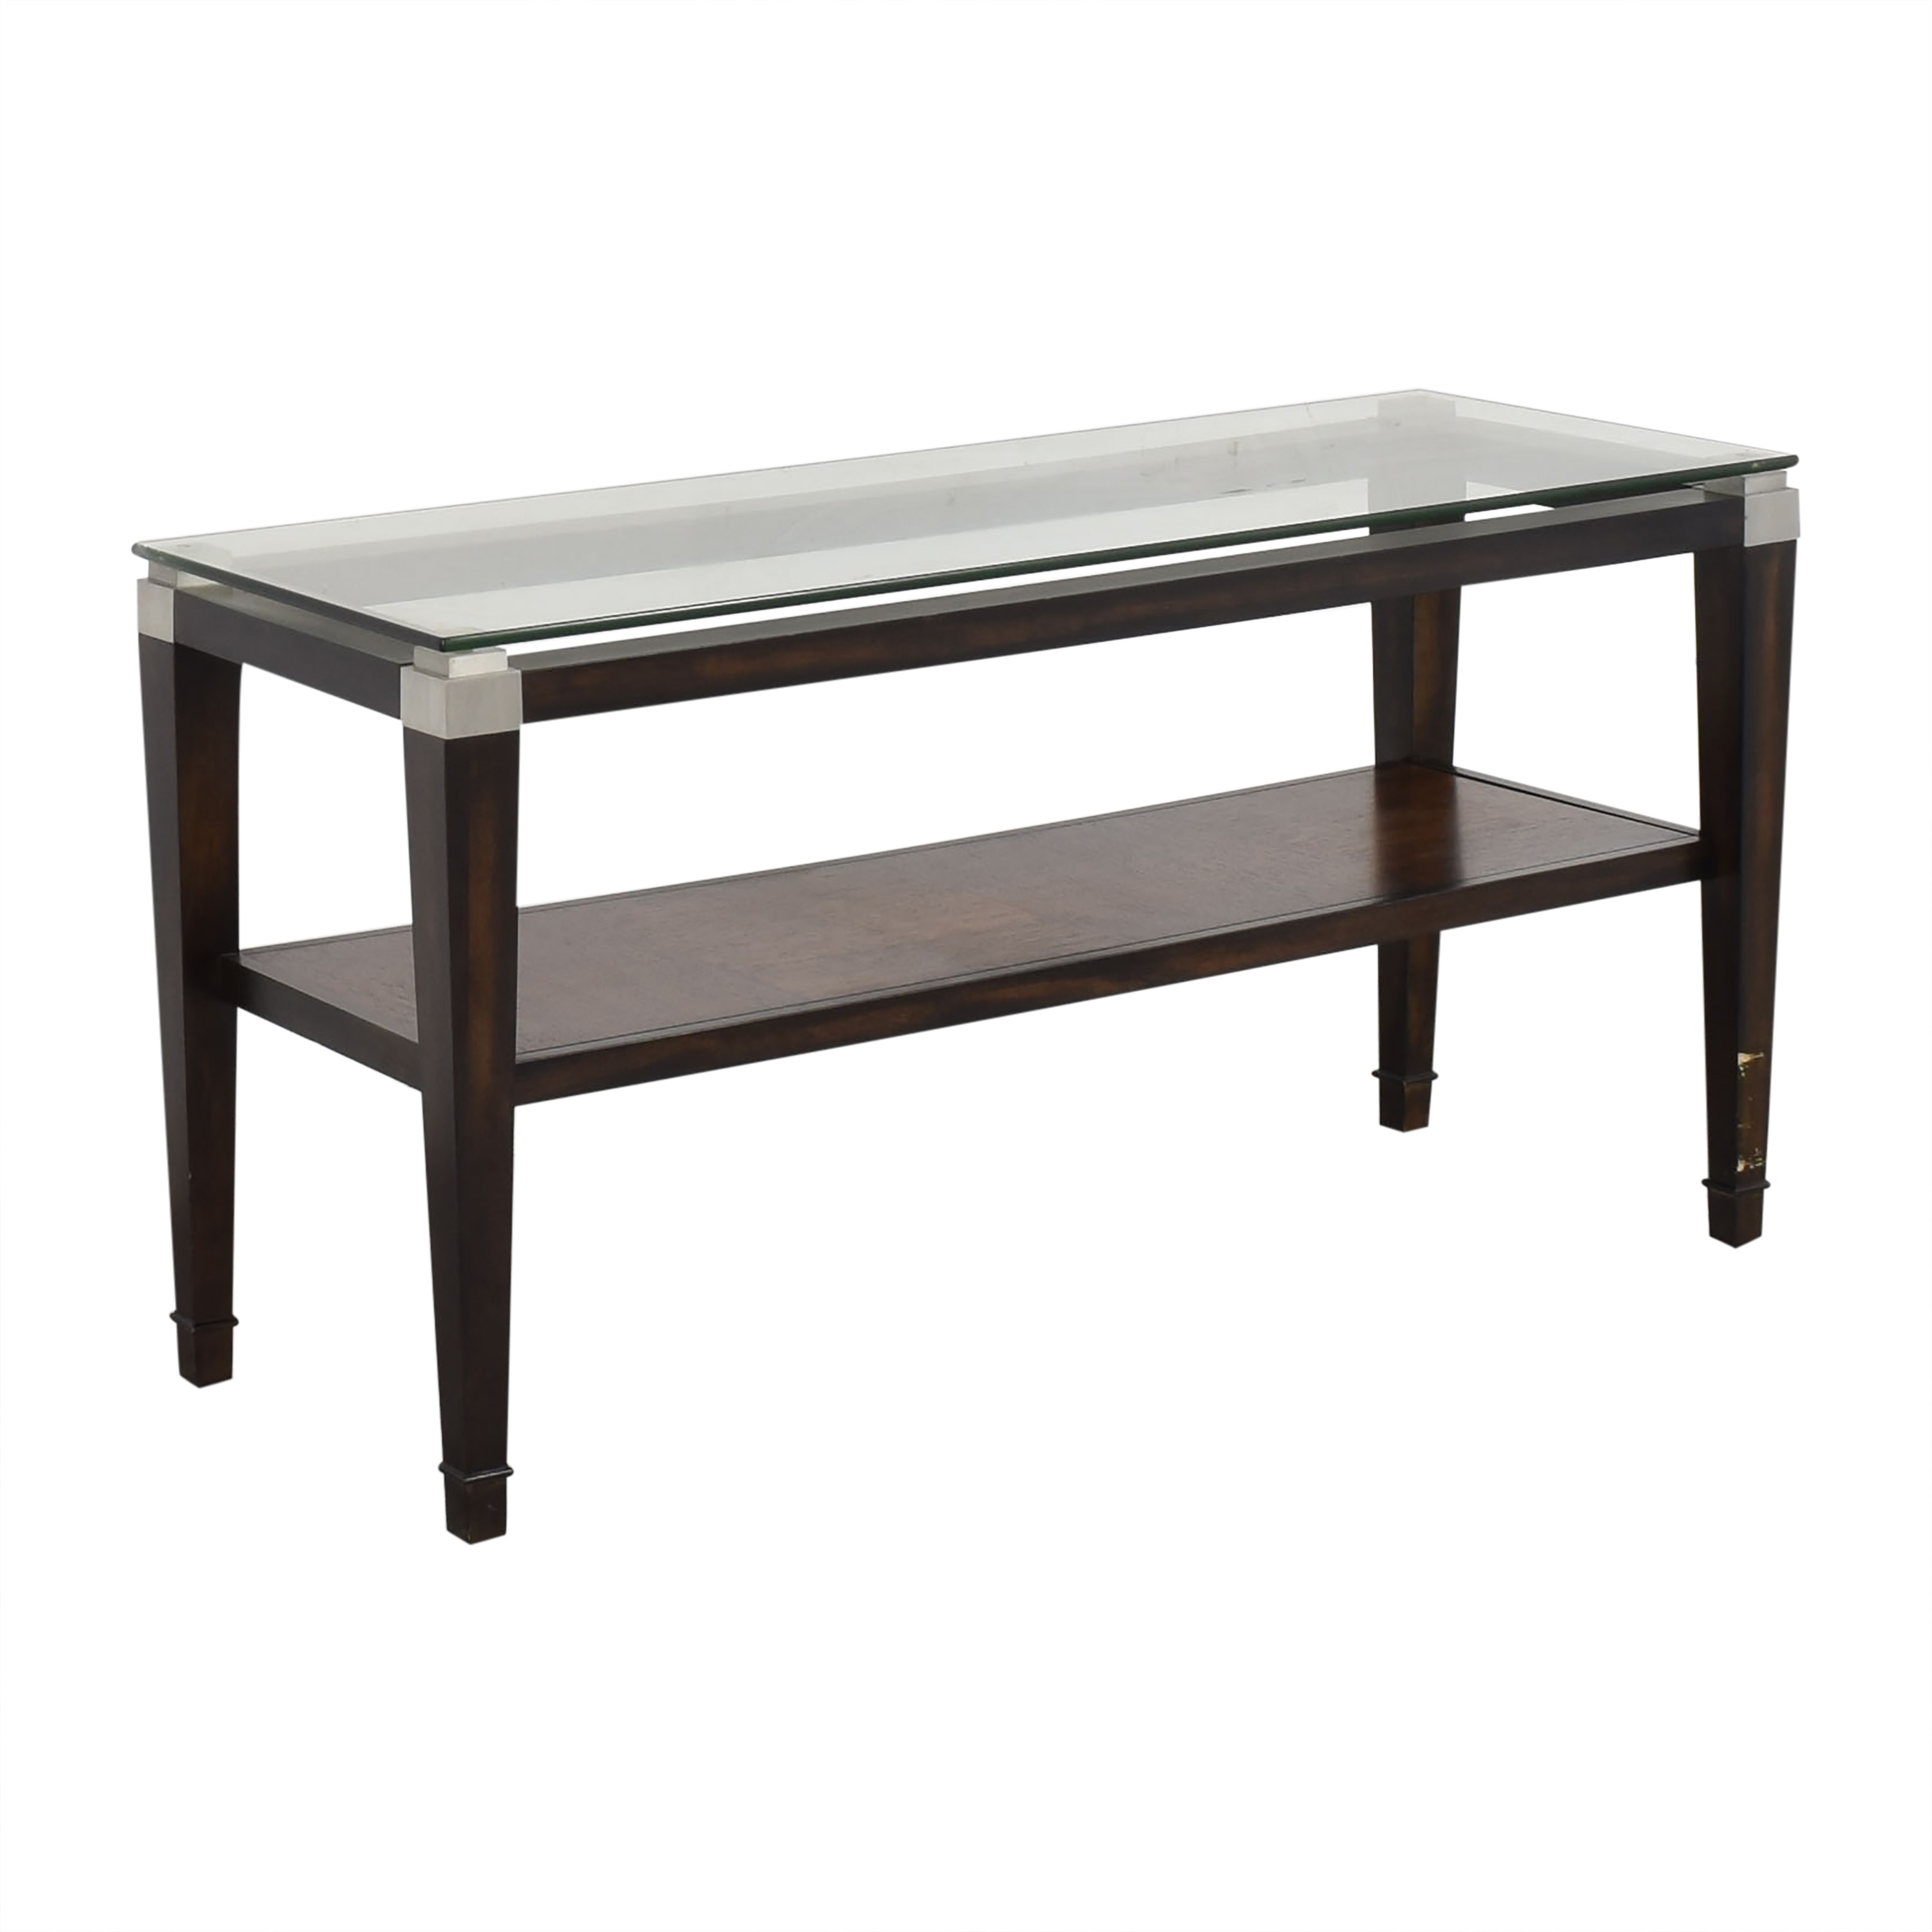 Raymour & Flanigan Raymour & Flanigan Dunhill Console Table used